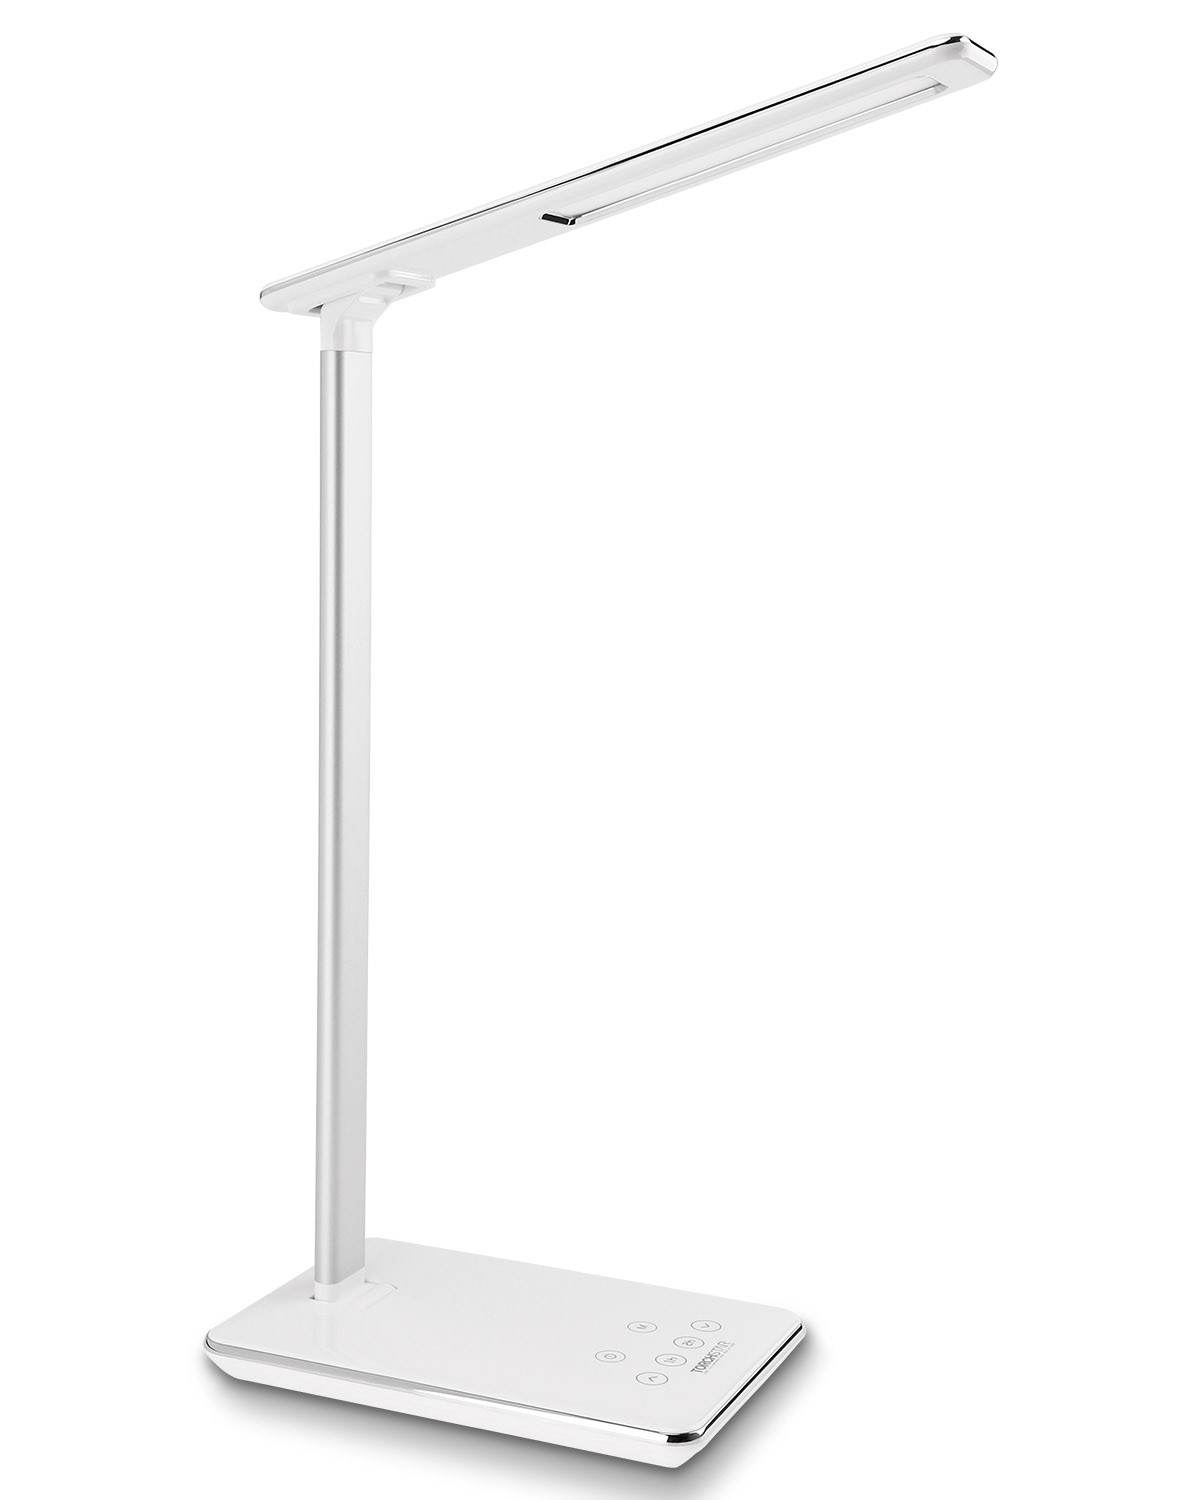 Dimmable LED Desk Lamp, 4 Lighting Modes (Reading Studying Relaxation Bedtime), Fully Adjustable Brightness, Touch... by